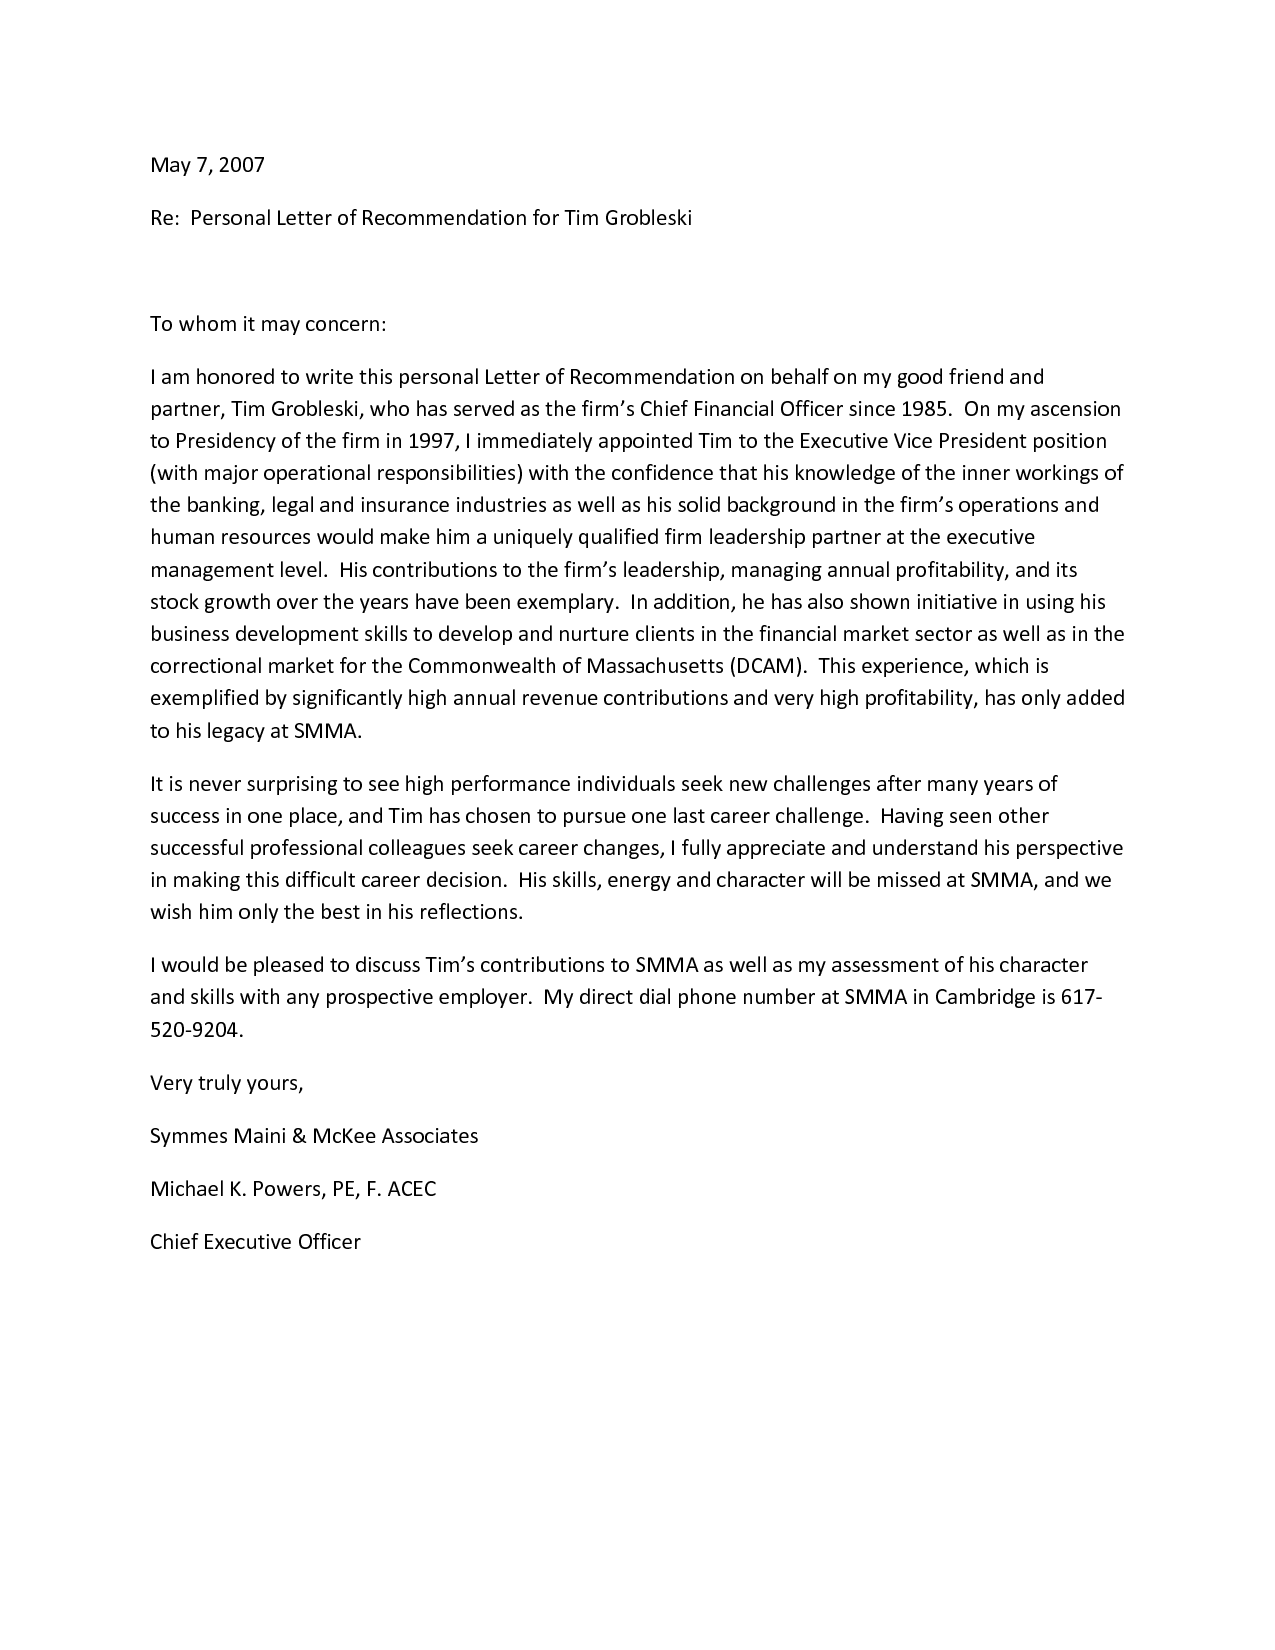 Free Personal Letter of Recommendation Template (For a Friend